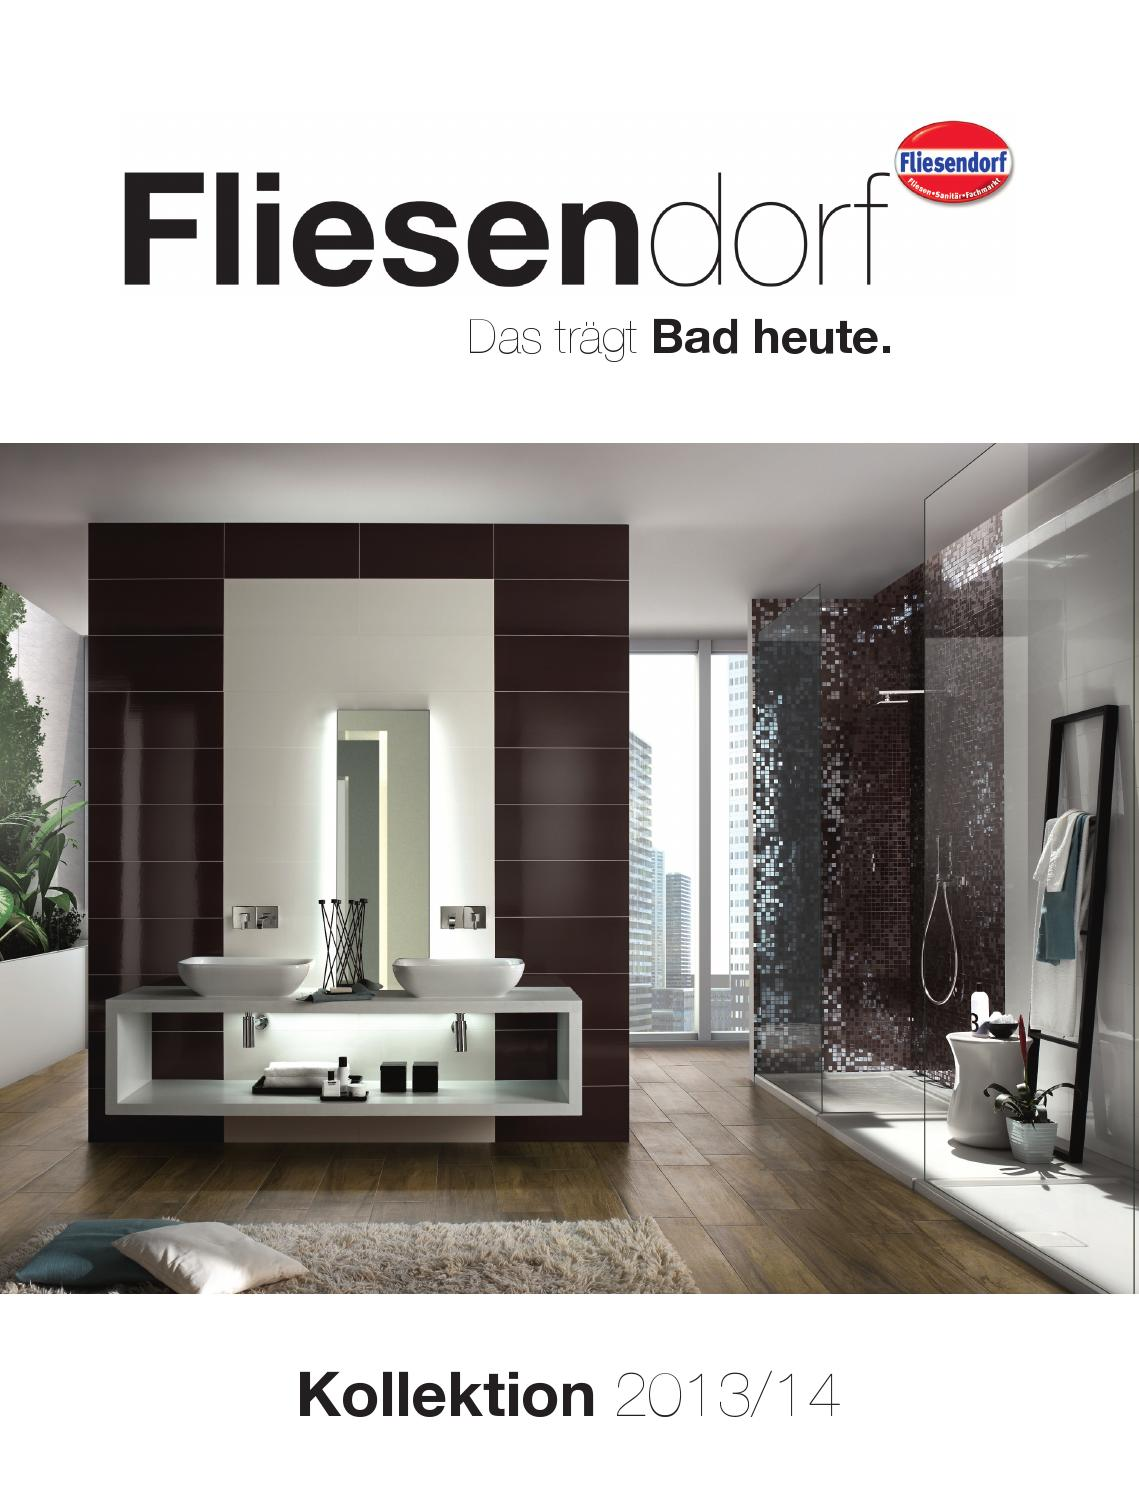 Fliesendorf kollektion 2014/2015 by fliesendorf.at   issuu